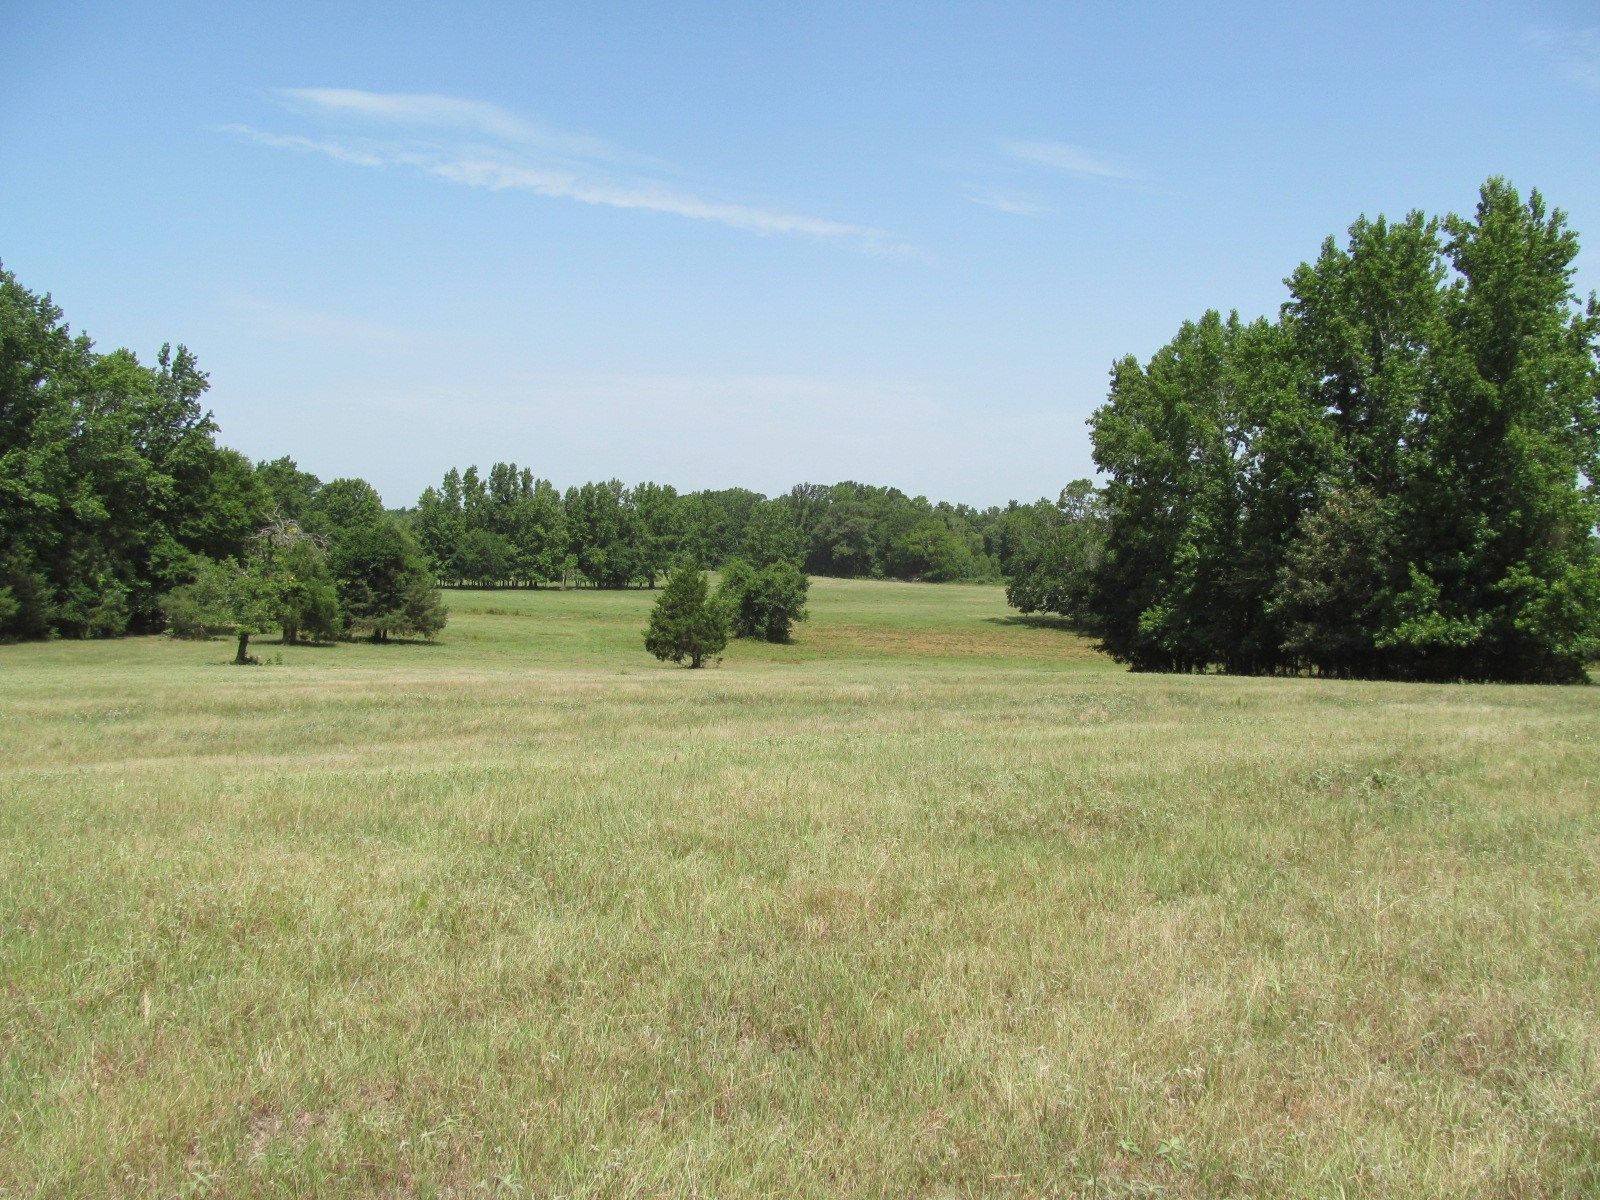 83 ACRES FOR SALE IN WOOD COUNTY - WINNSBORO, TEXAS